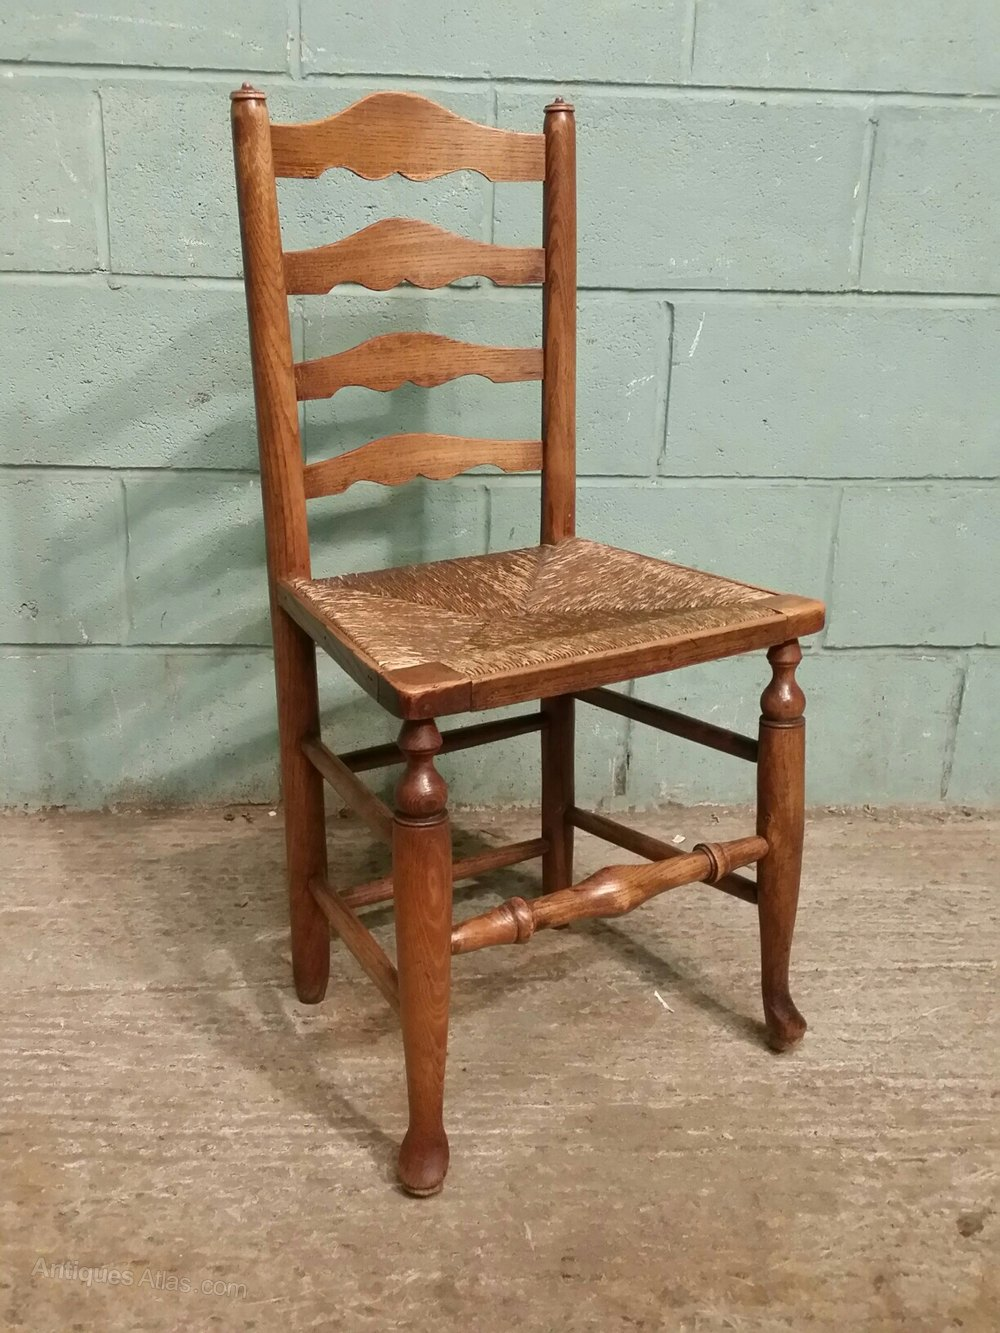 ... Antique Ladder Back Chairs ... - Antique Set 4 Country Elm Ladder Back Chairs C1840 - Antiques Atlas